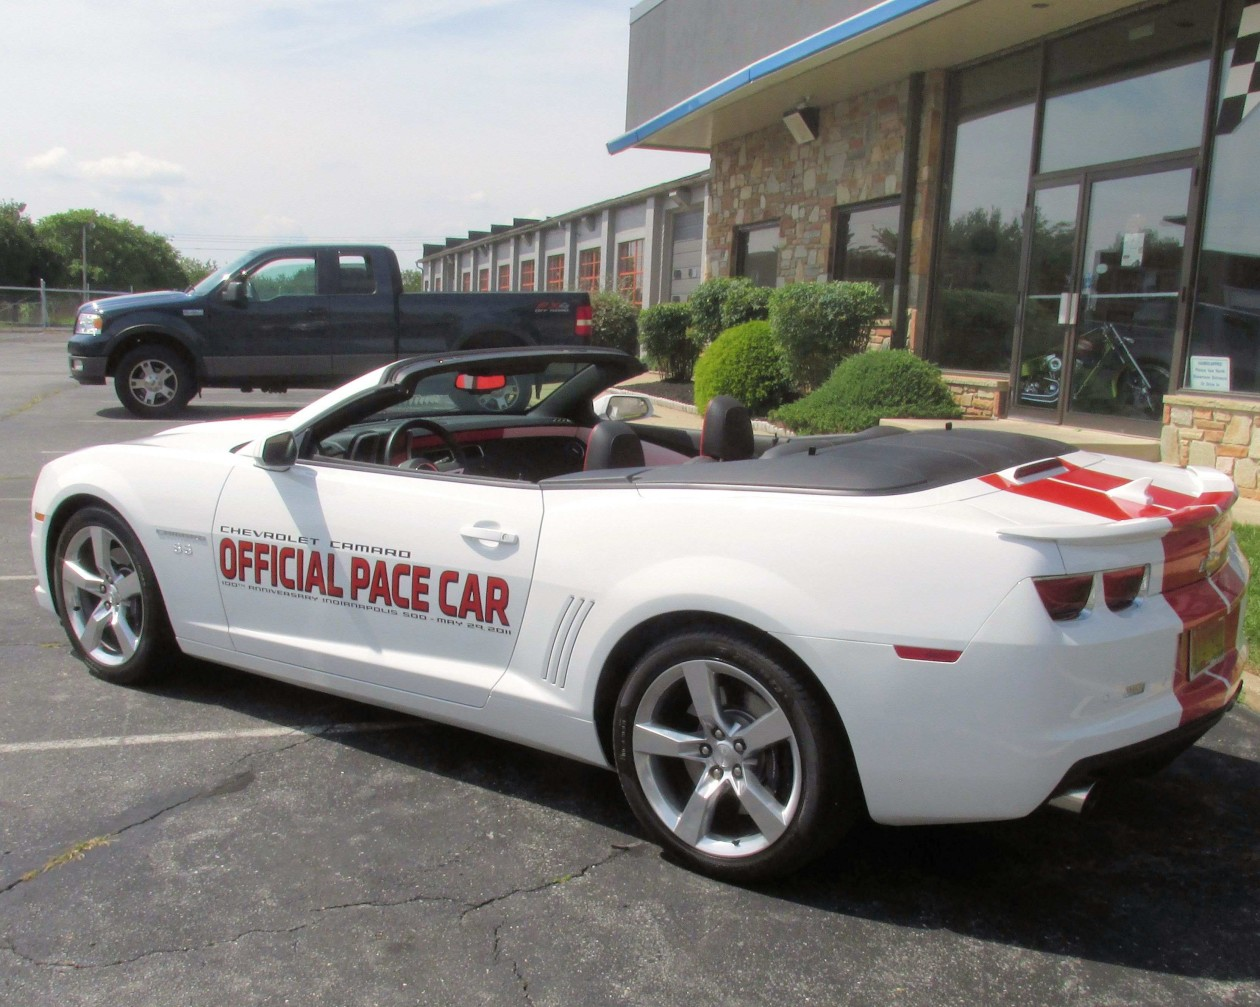 1969 Camaro Indy 500 Pace Car Used Camaros For Sale At